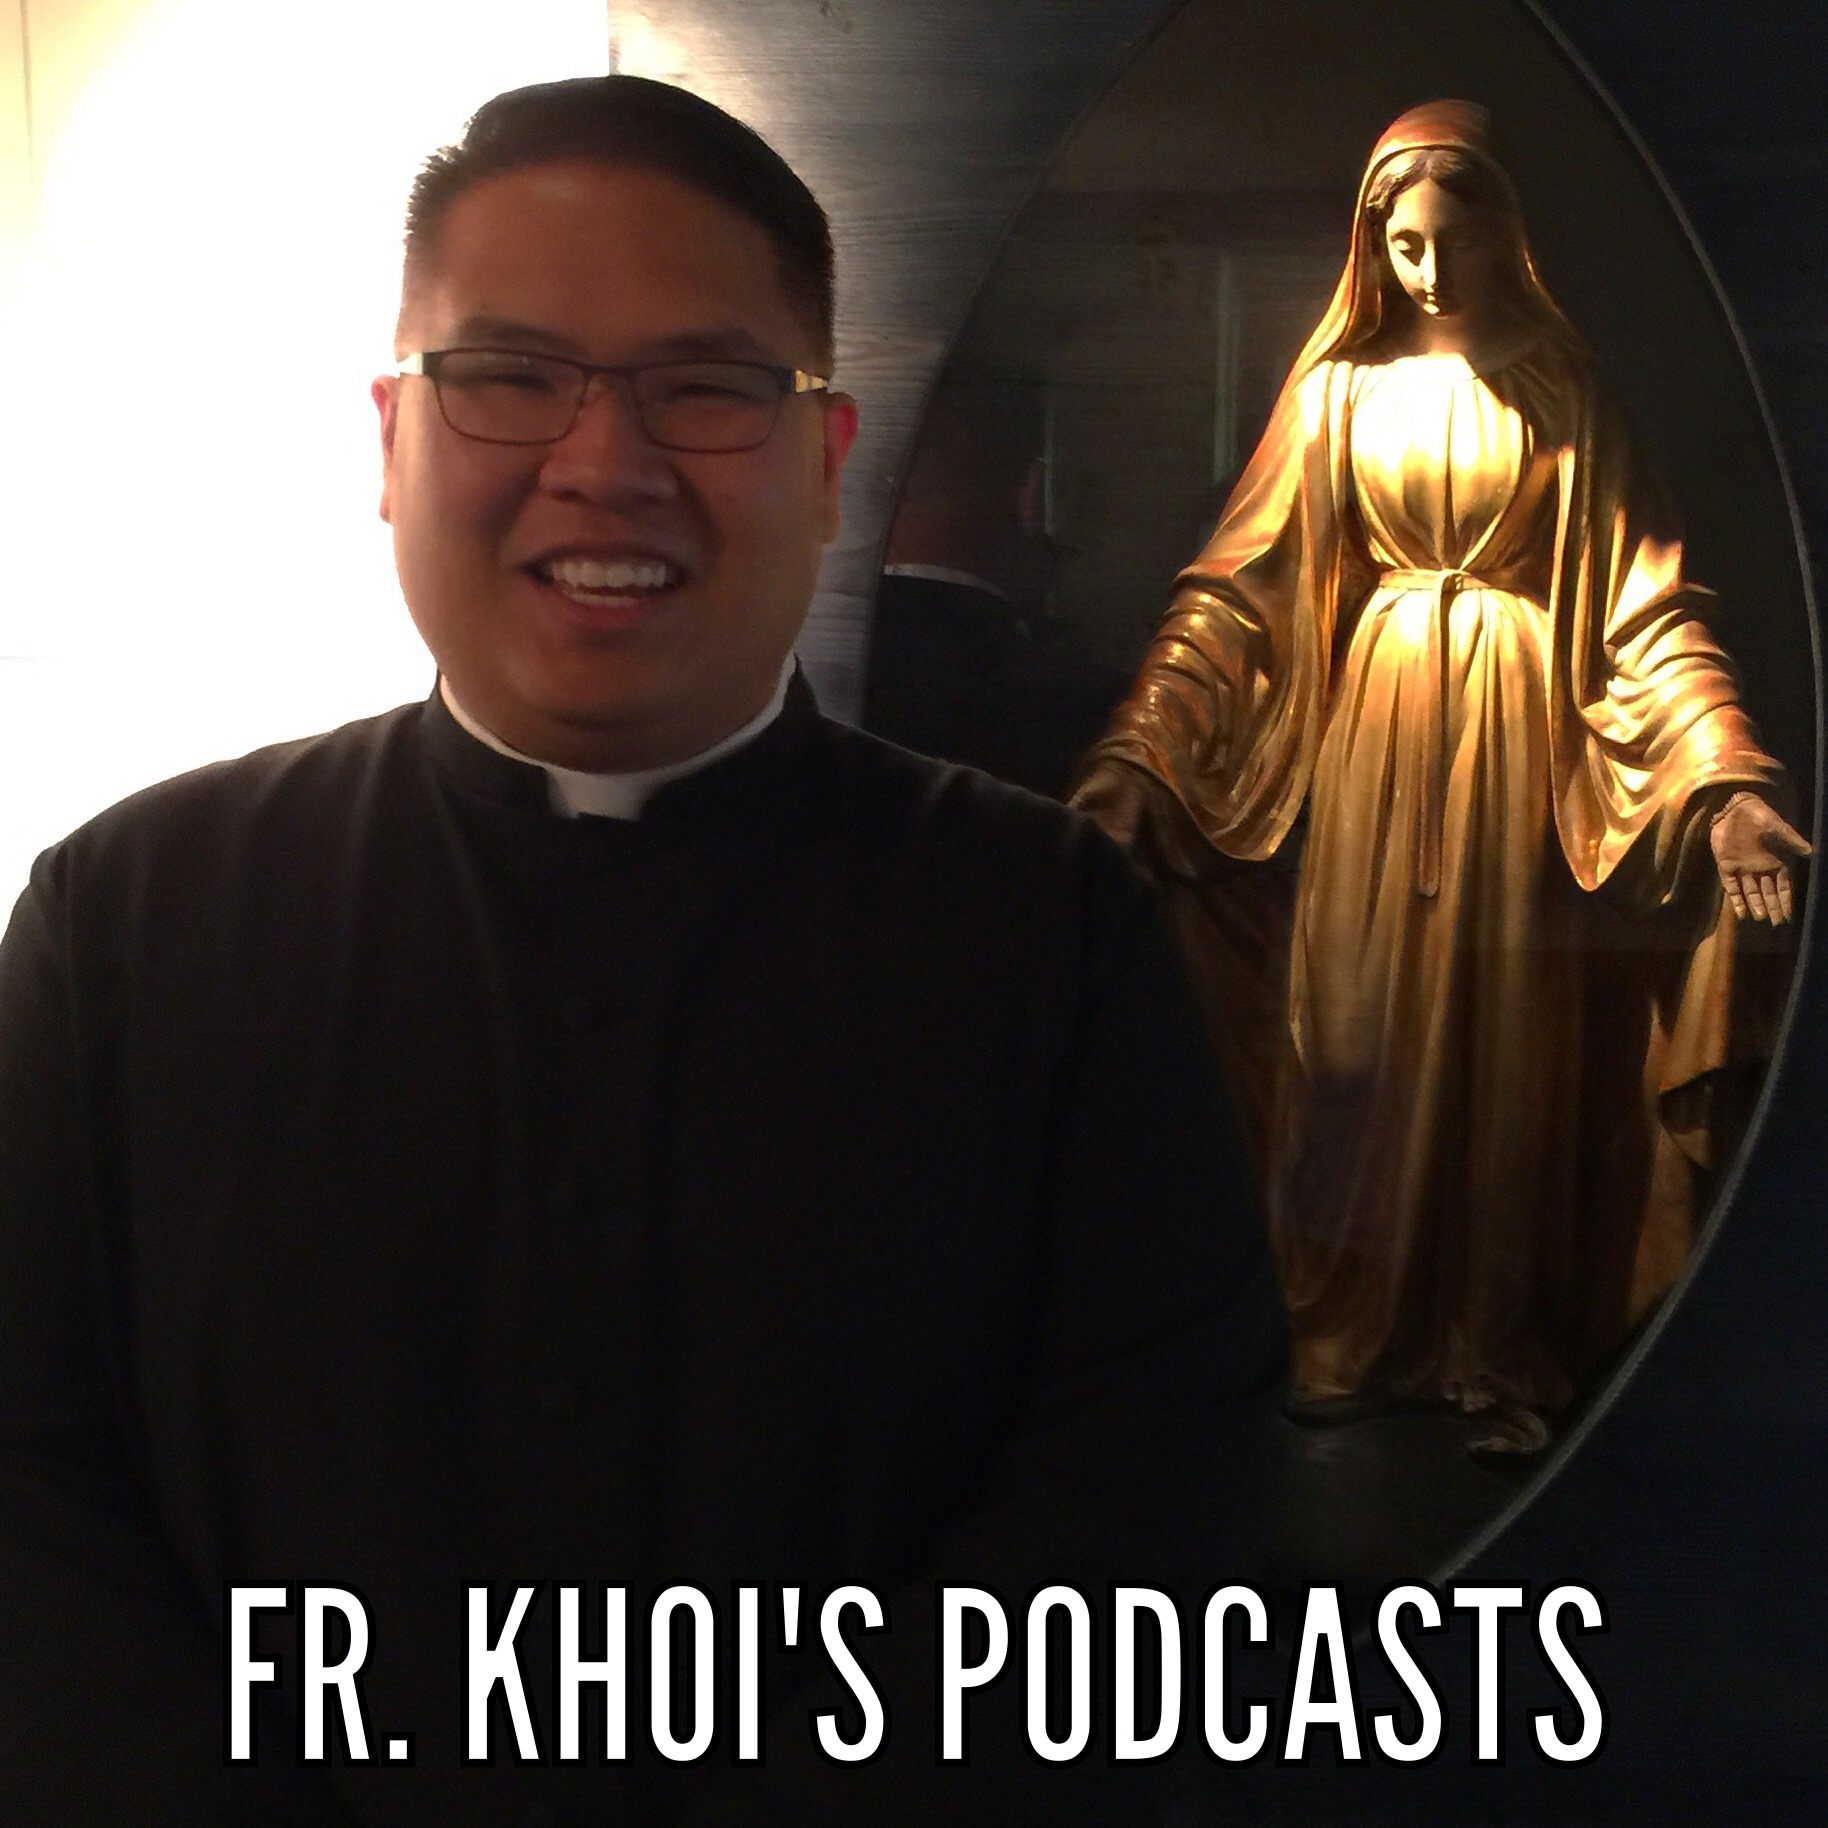 Father Khoi's Podcasts